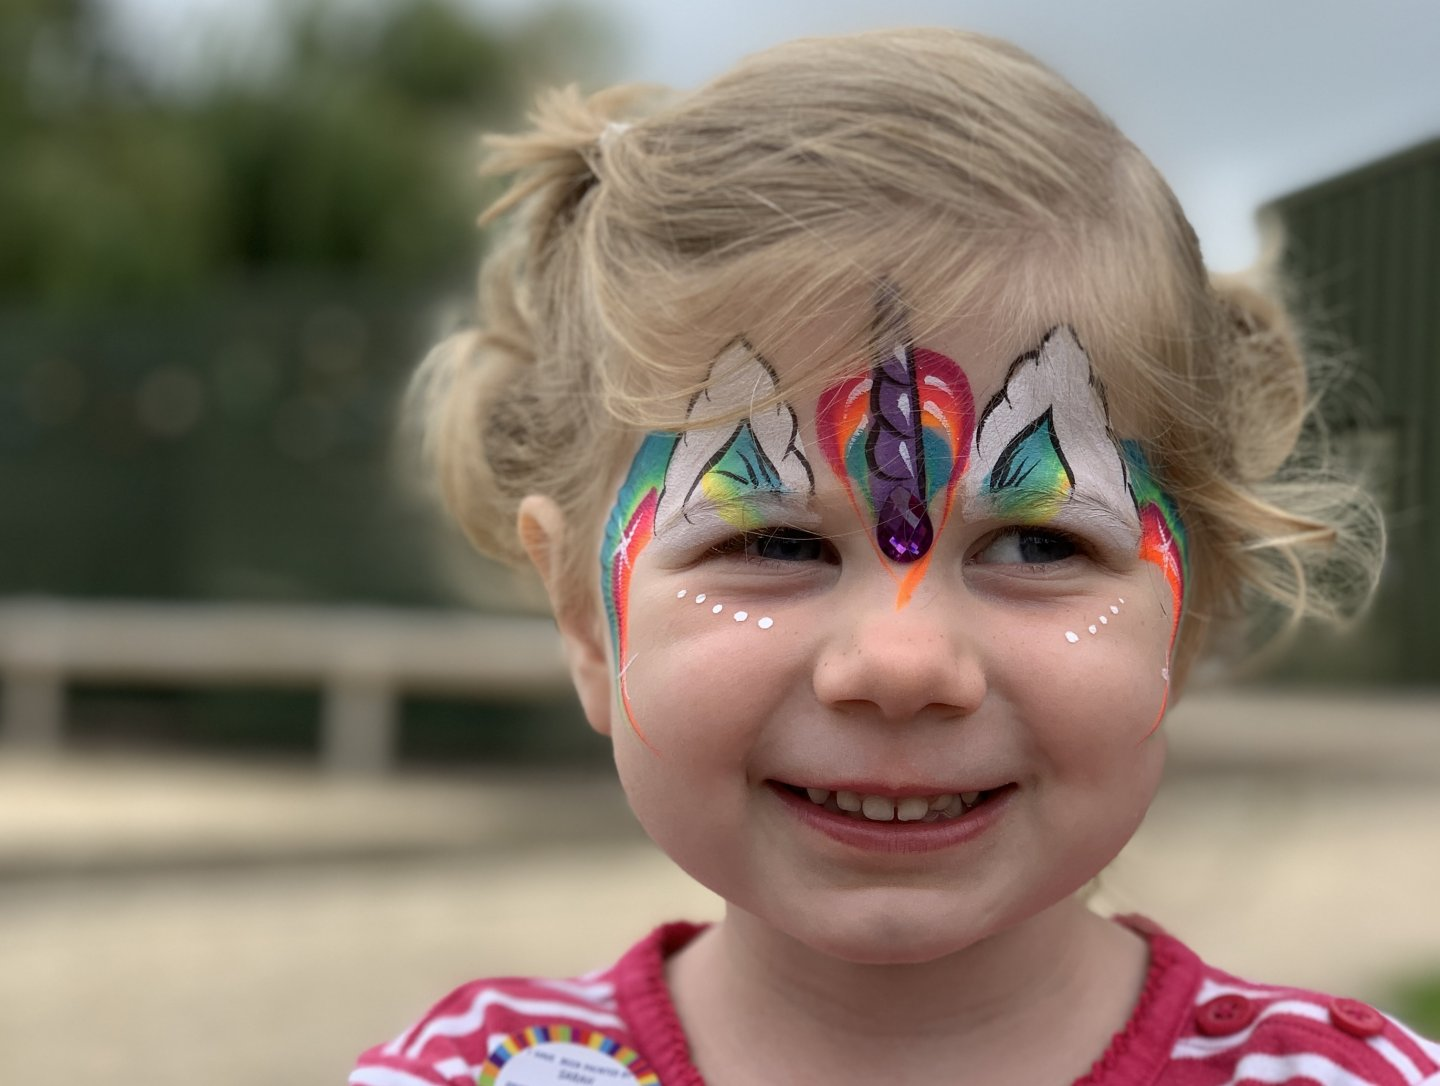 M has her face painted, with rainbows across her forehead and a purple unicorn horn, complete with purple 'jewel', in the centre.